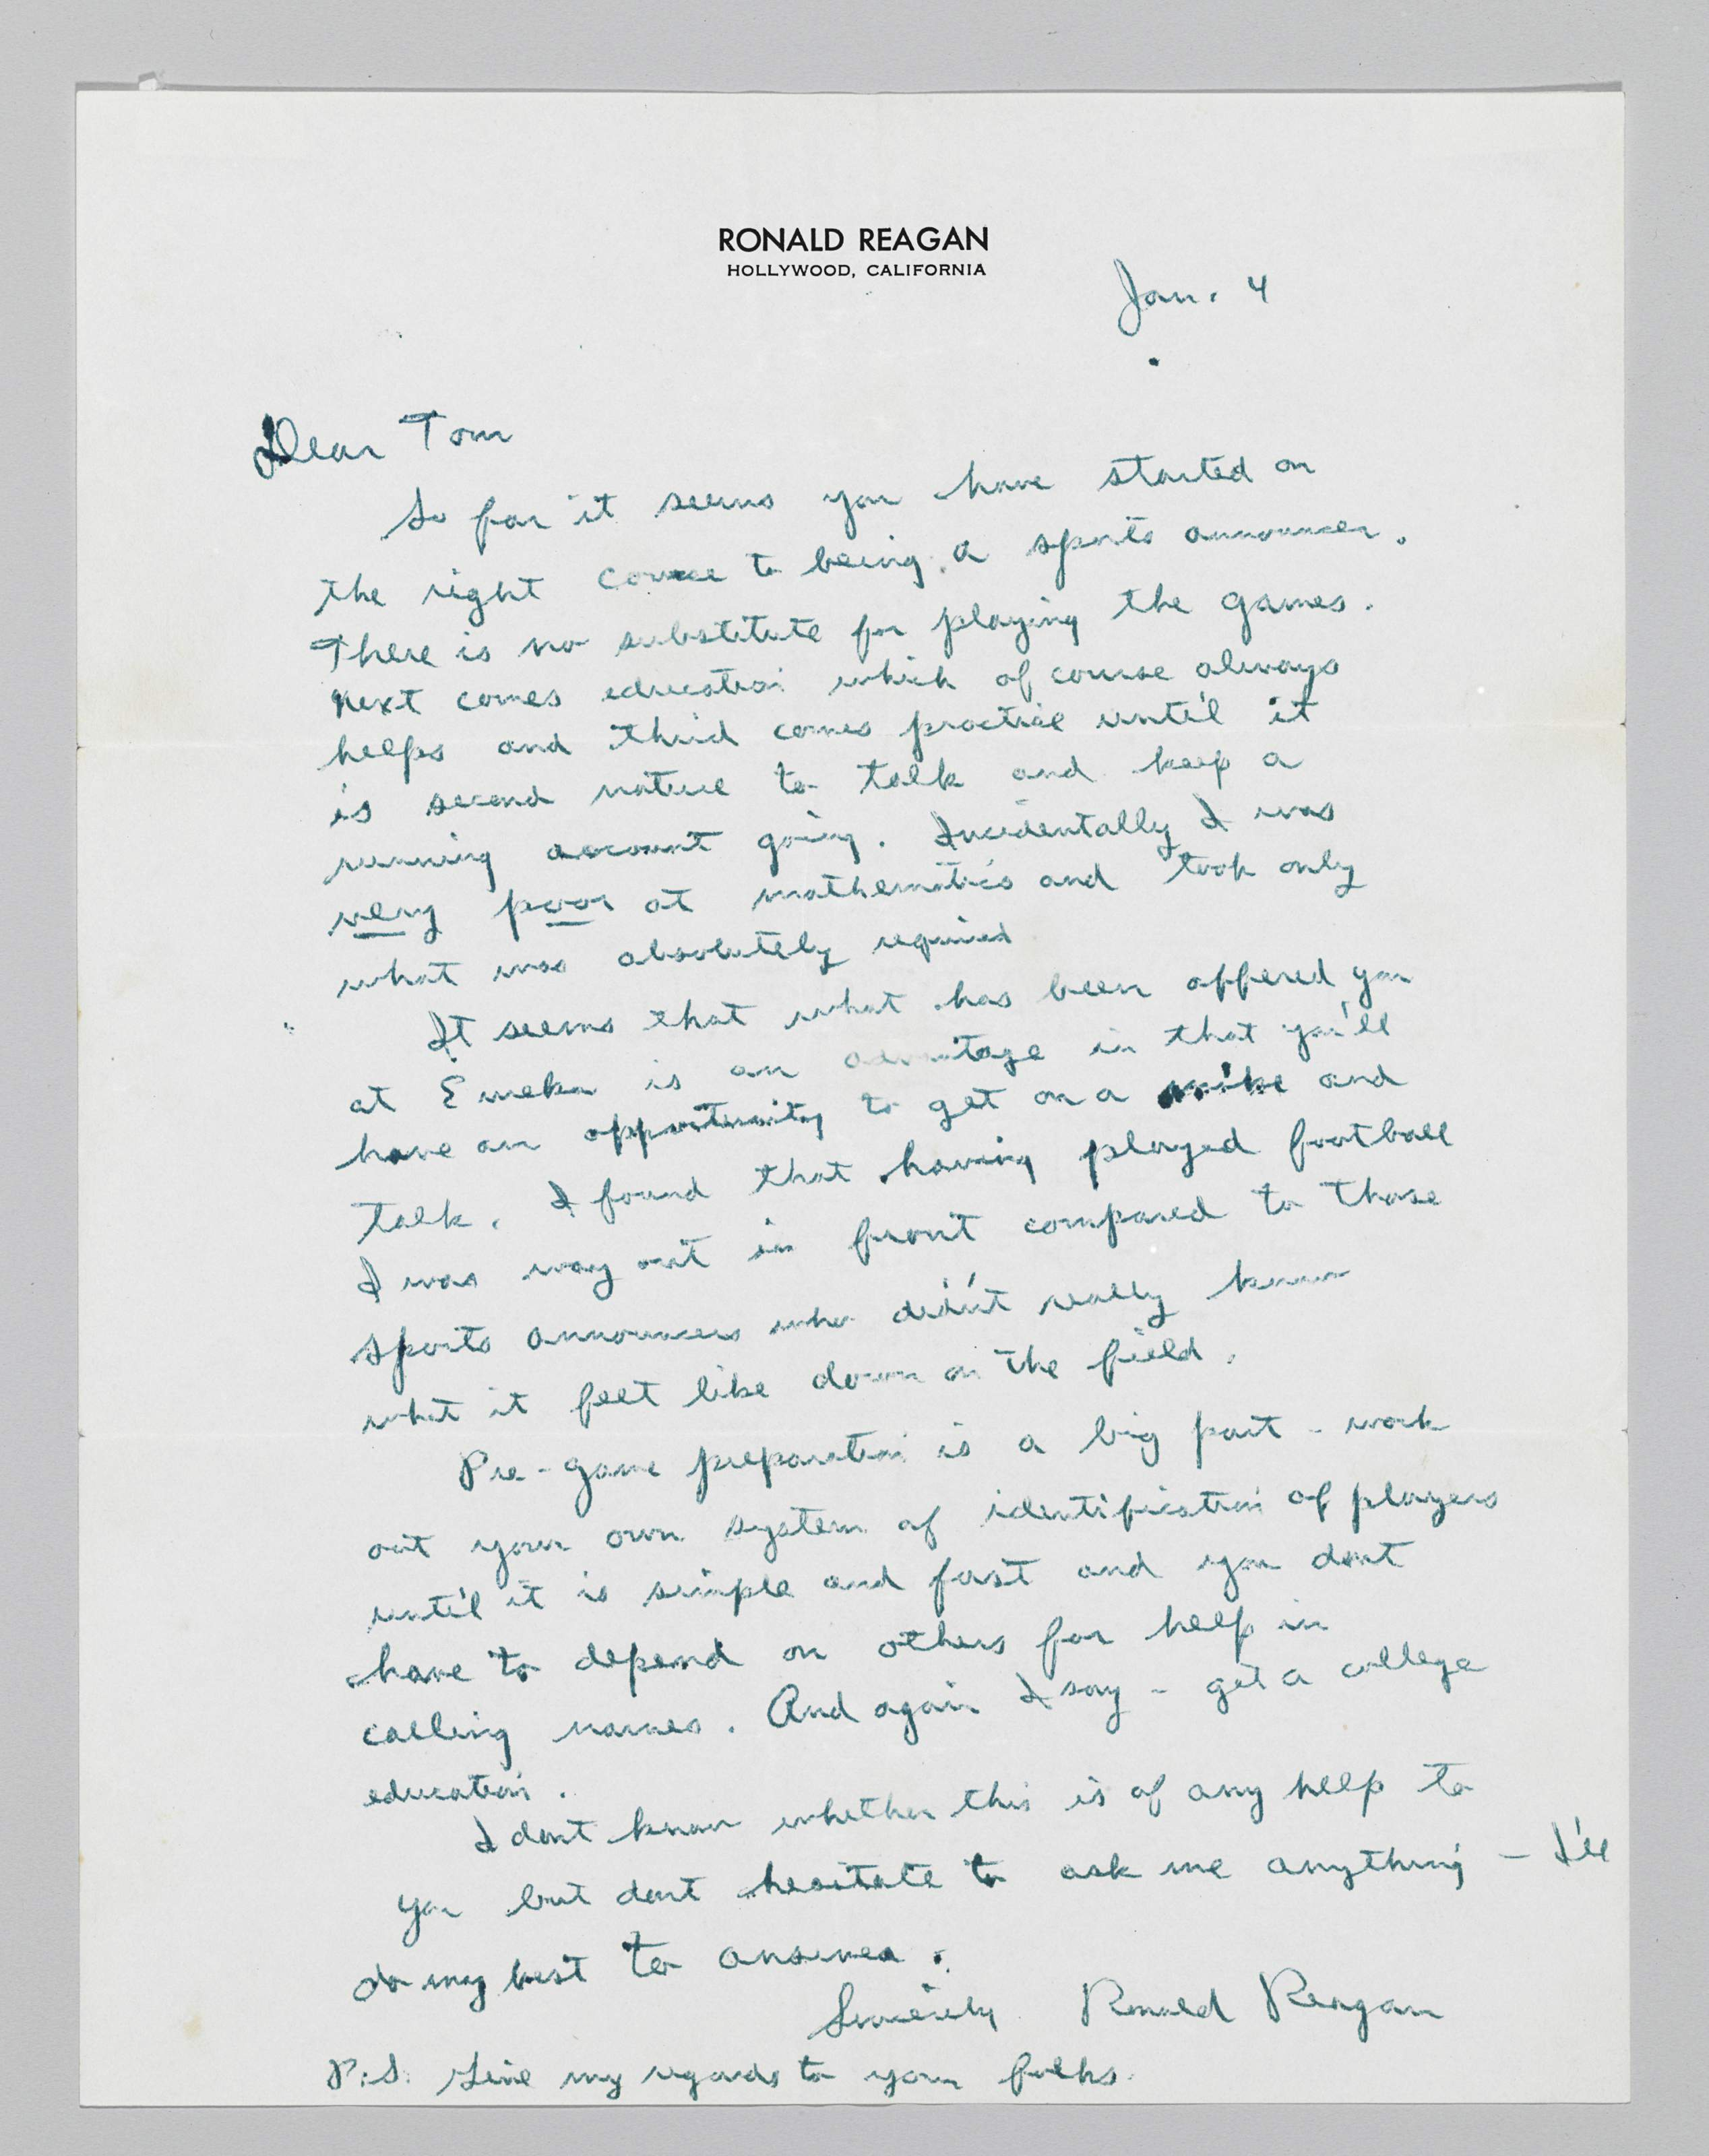 """REAGAN, Ronald (1911-2004). Autograph letter signed (""""Ronald Reagan"""") to an unidentified young man (Tom Tweddale), Hollywood, Cal., 4 January [1952]. 1 full page, 4to, in fountain-pen on imprinted stationery ."""